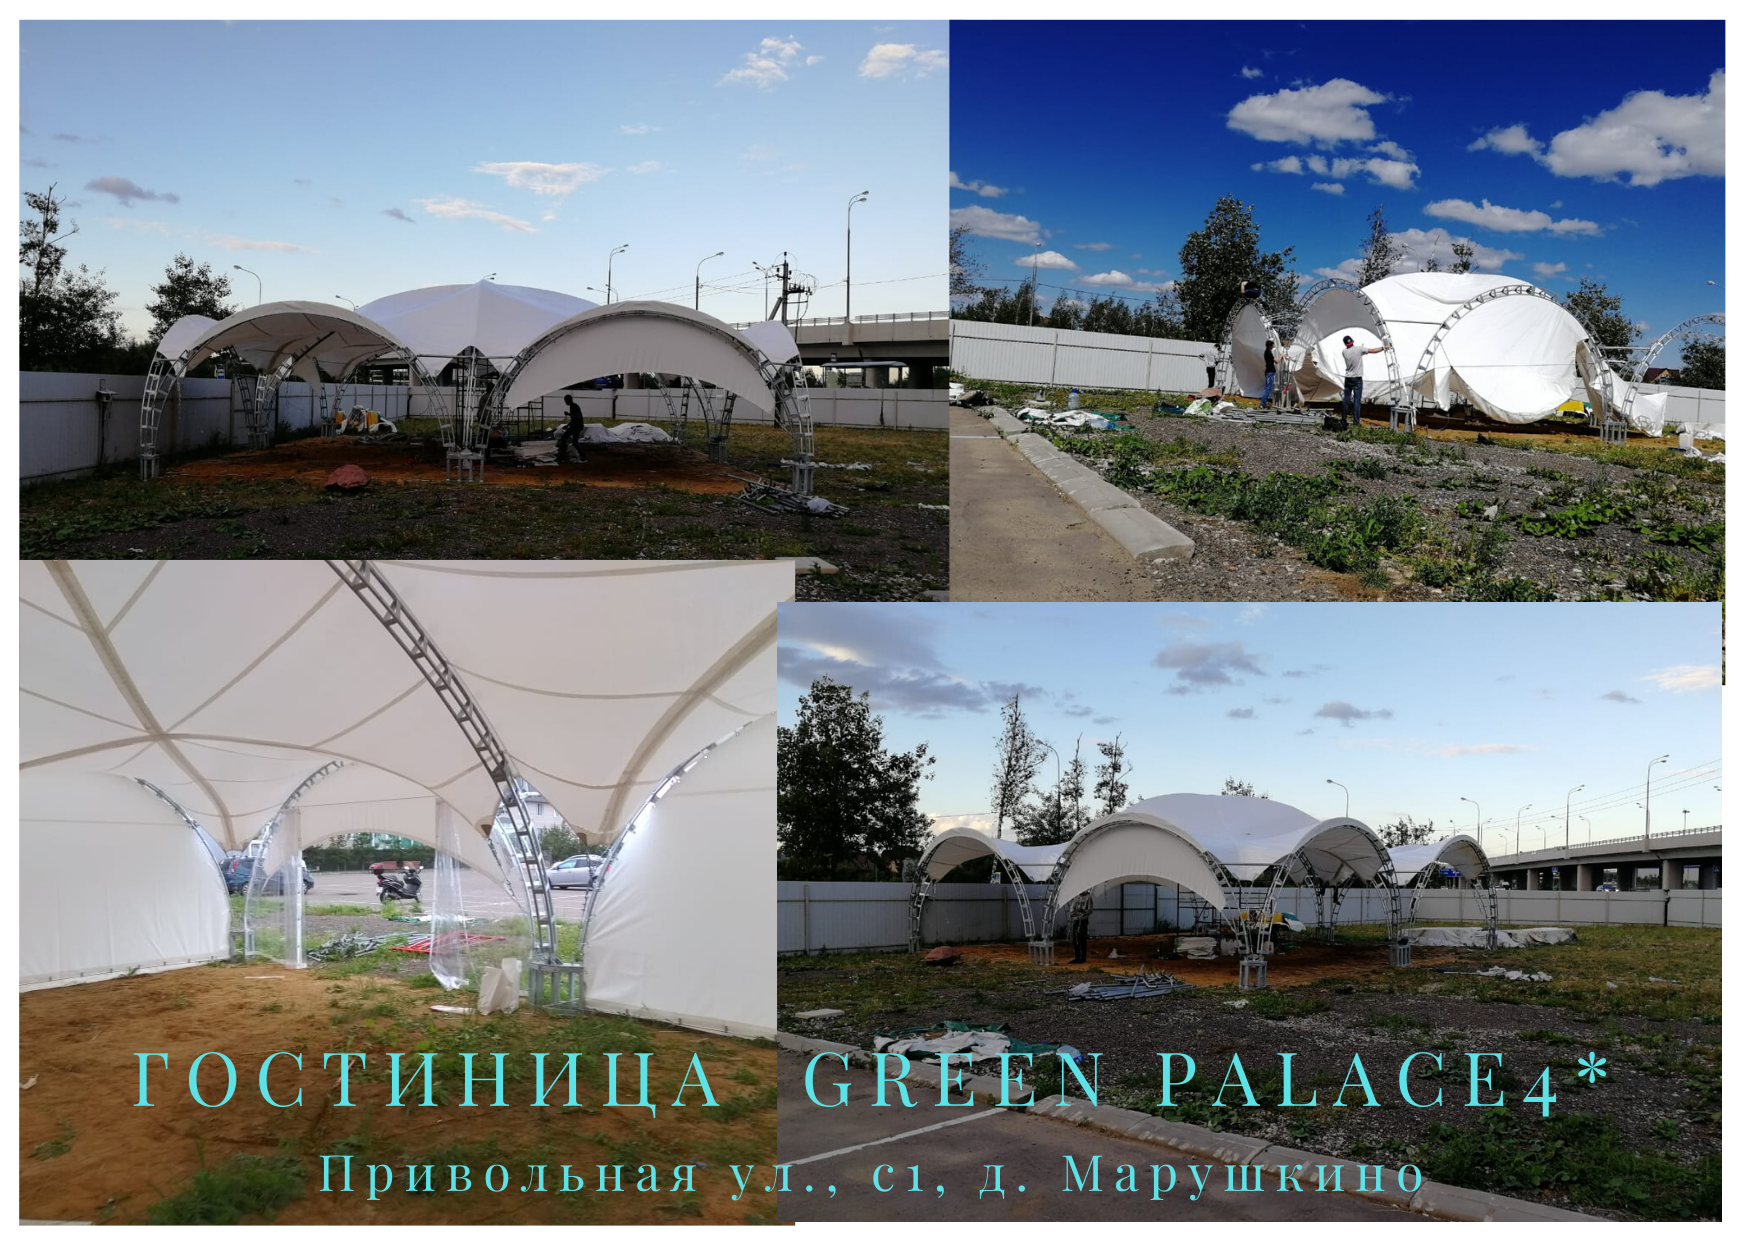 Проект FirstTent гостиница Green Palace 4*